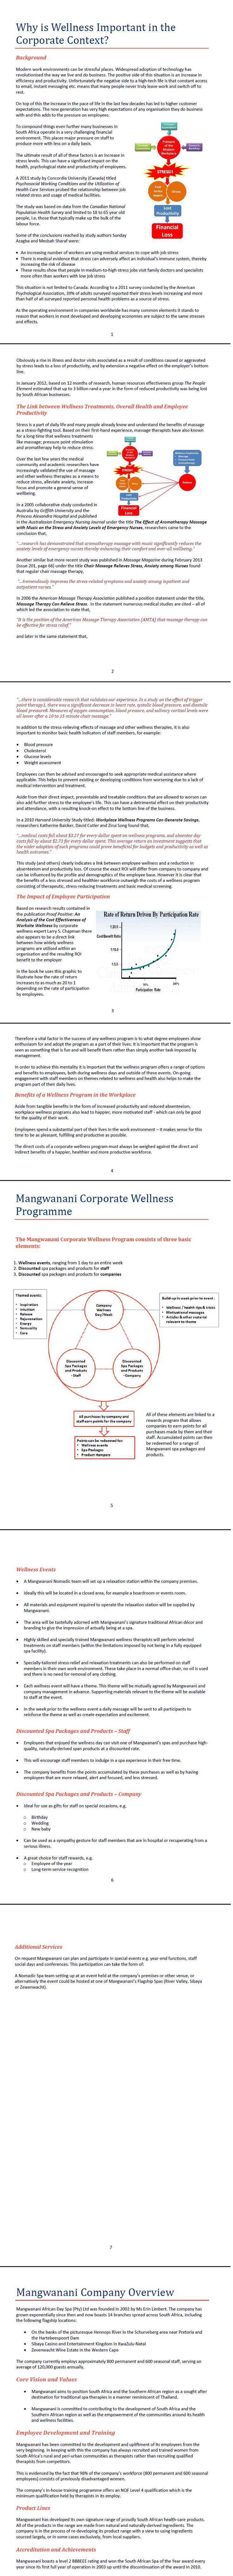 Mangwanani_Corporate Wellness Background Document   #wordtiffie  Need similar (or other copywriting/web content) work done?  Contact me - darrell@wordtiffie.co.za